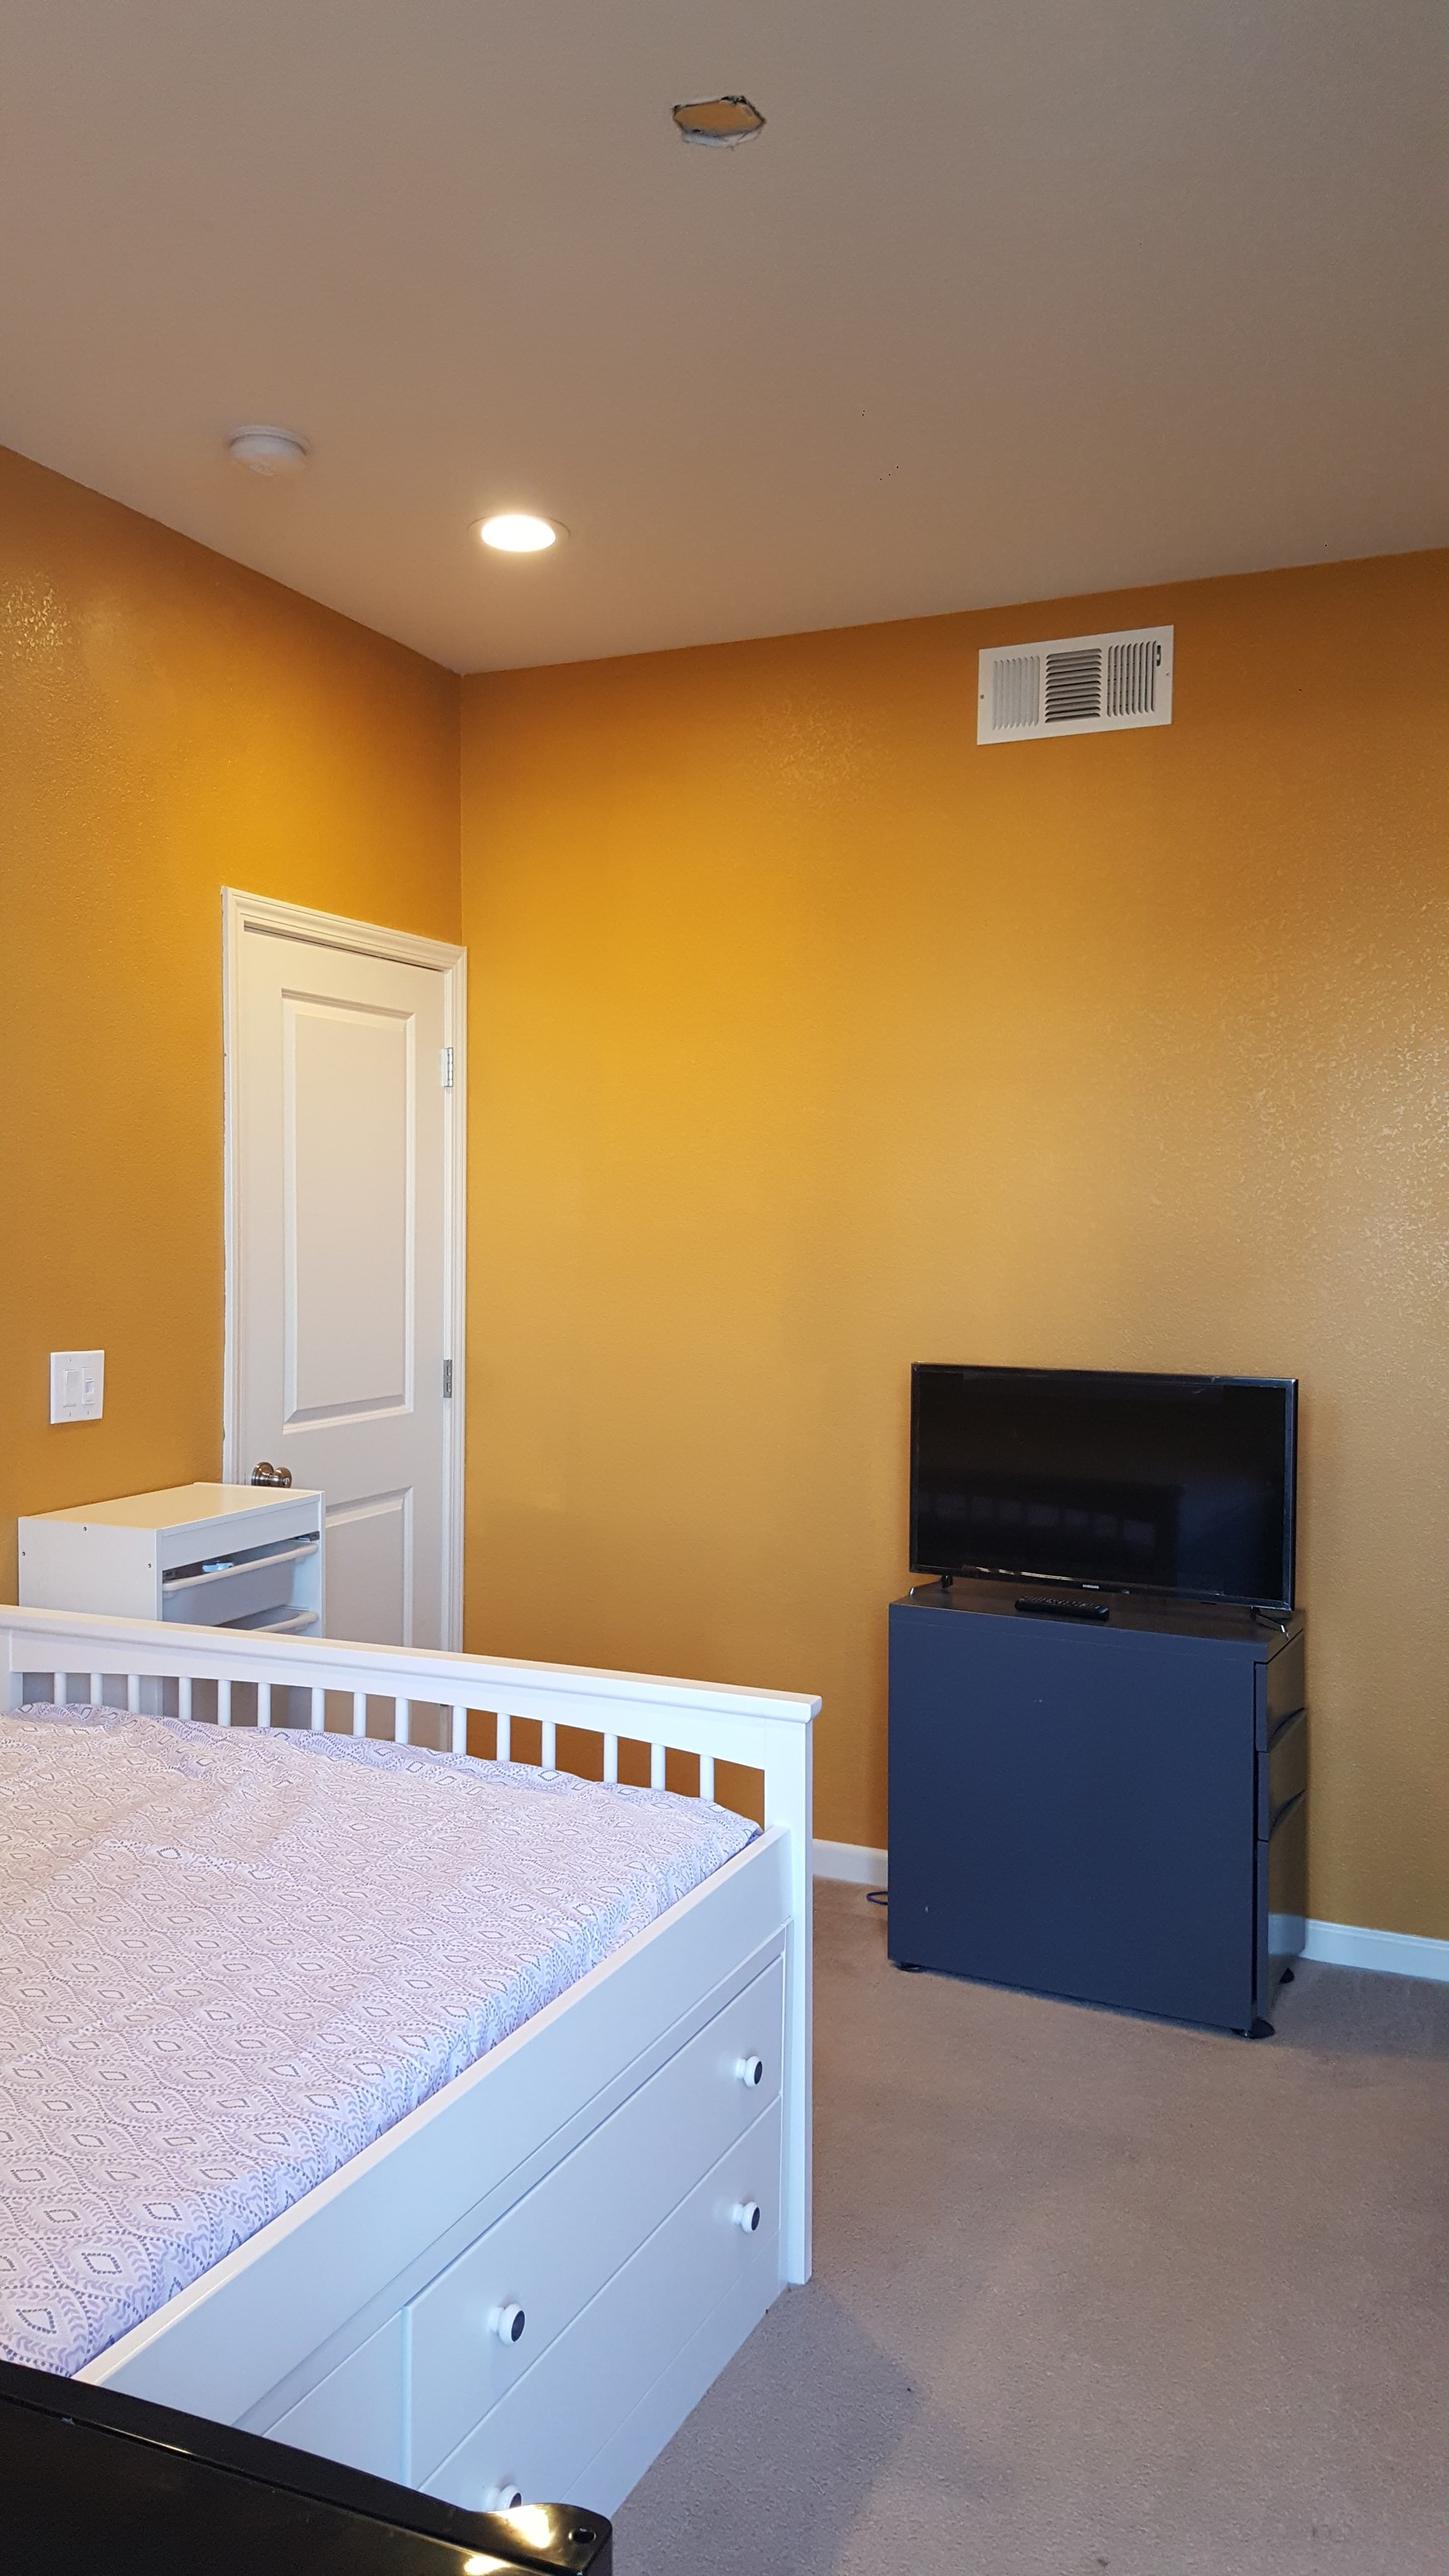 Single Room For Rent In Fremont Ca